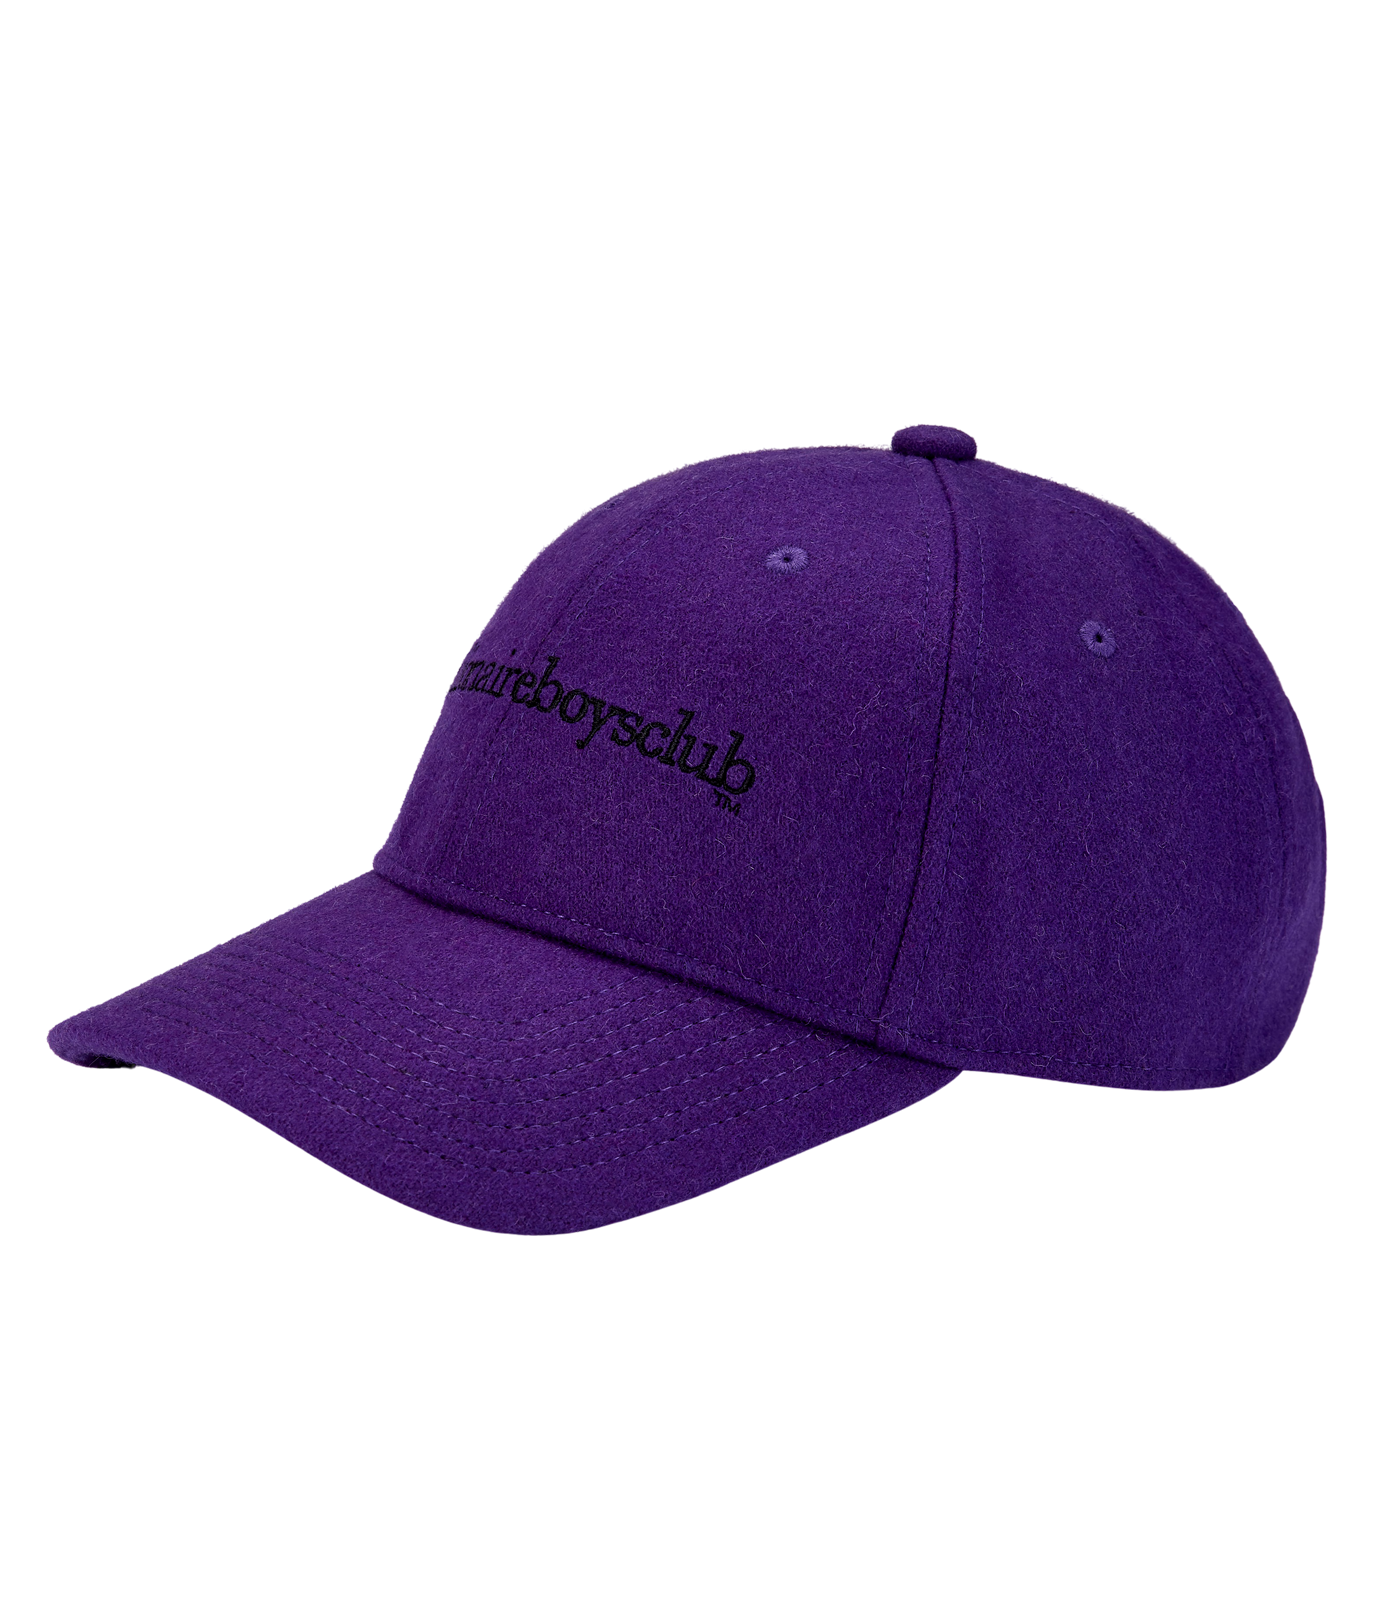 EMBROIDERED WOOL CURVED VISOR CAP - PURPLE